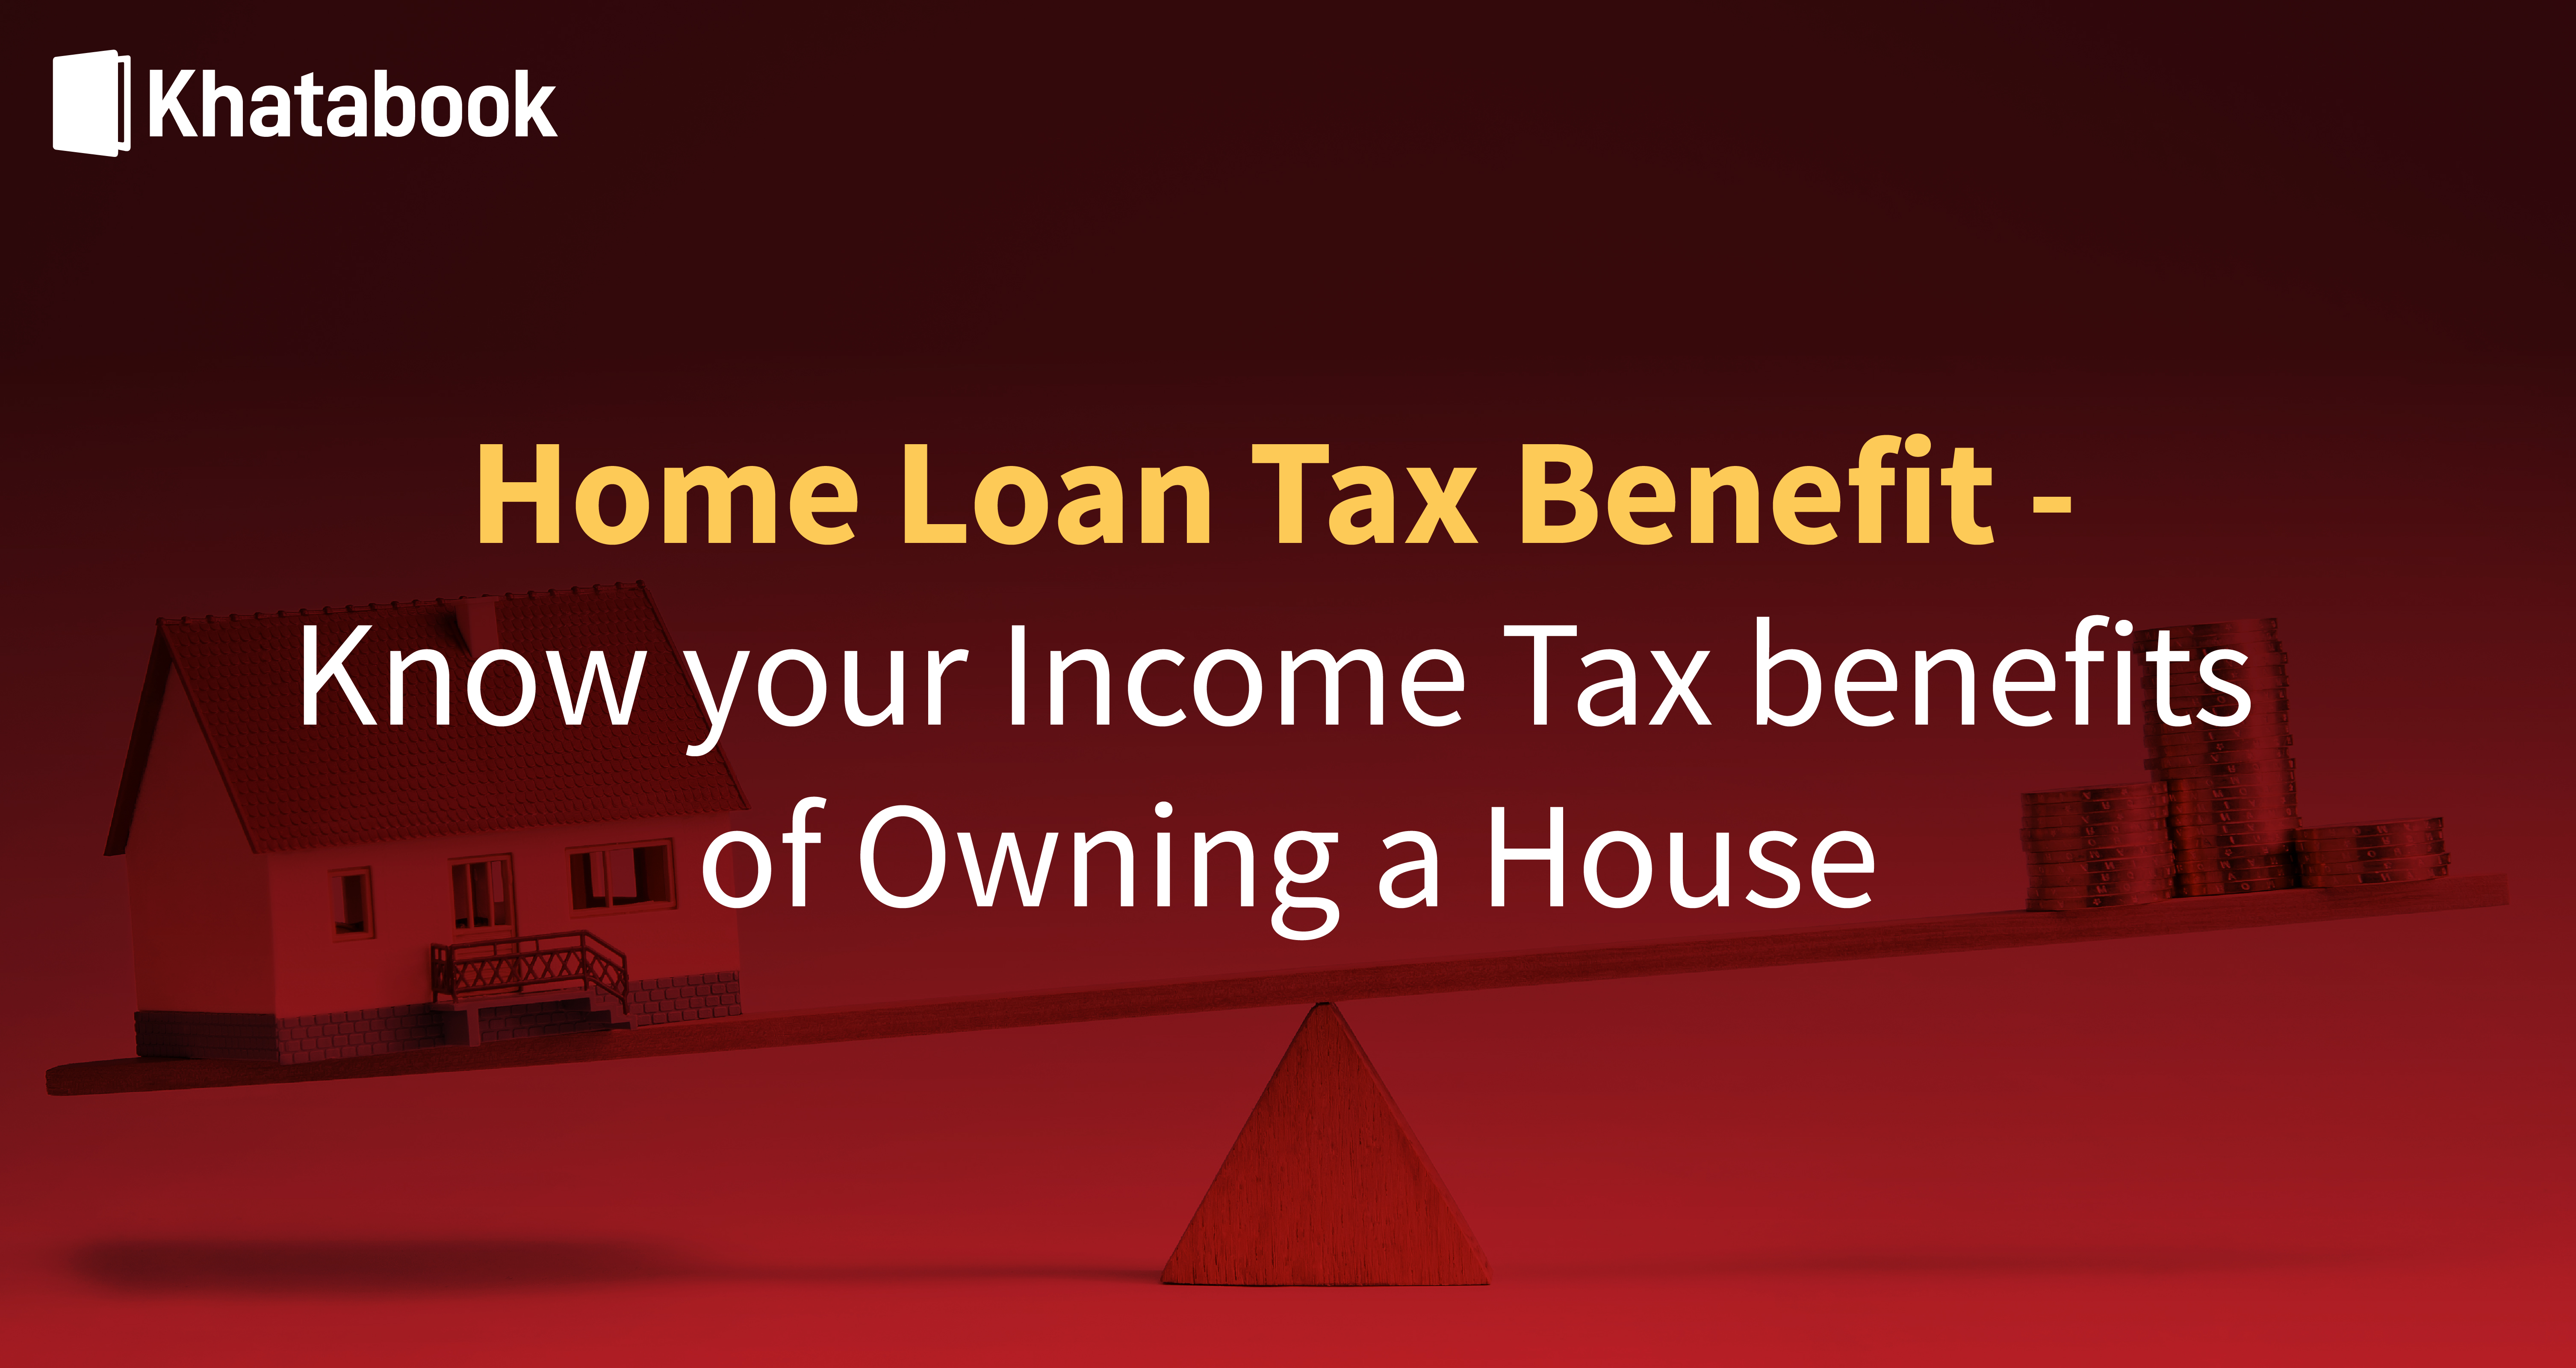 What are the Income Tax Benefits Of Owning A House